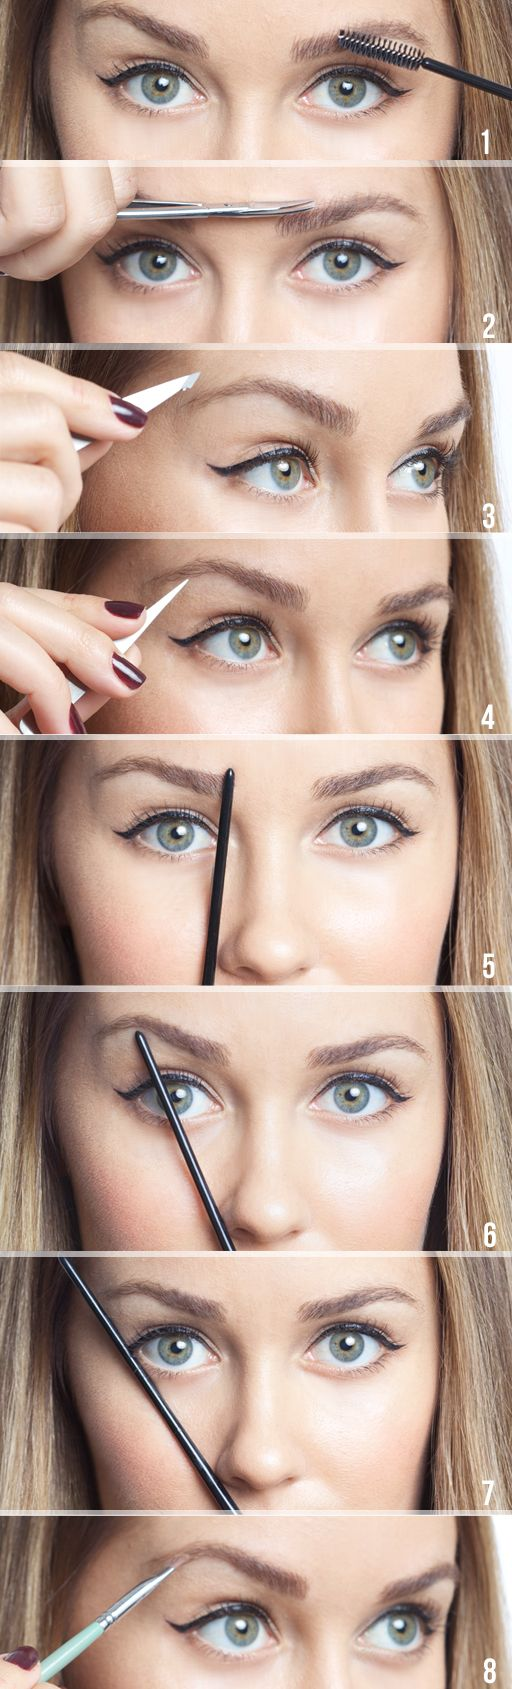 Brows 101. Oh, how I wish more people would learn this! Brows are the key to facial beauty.